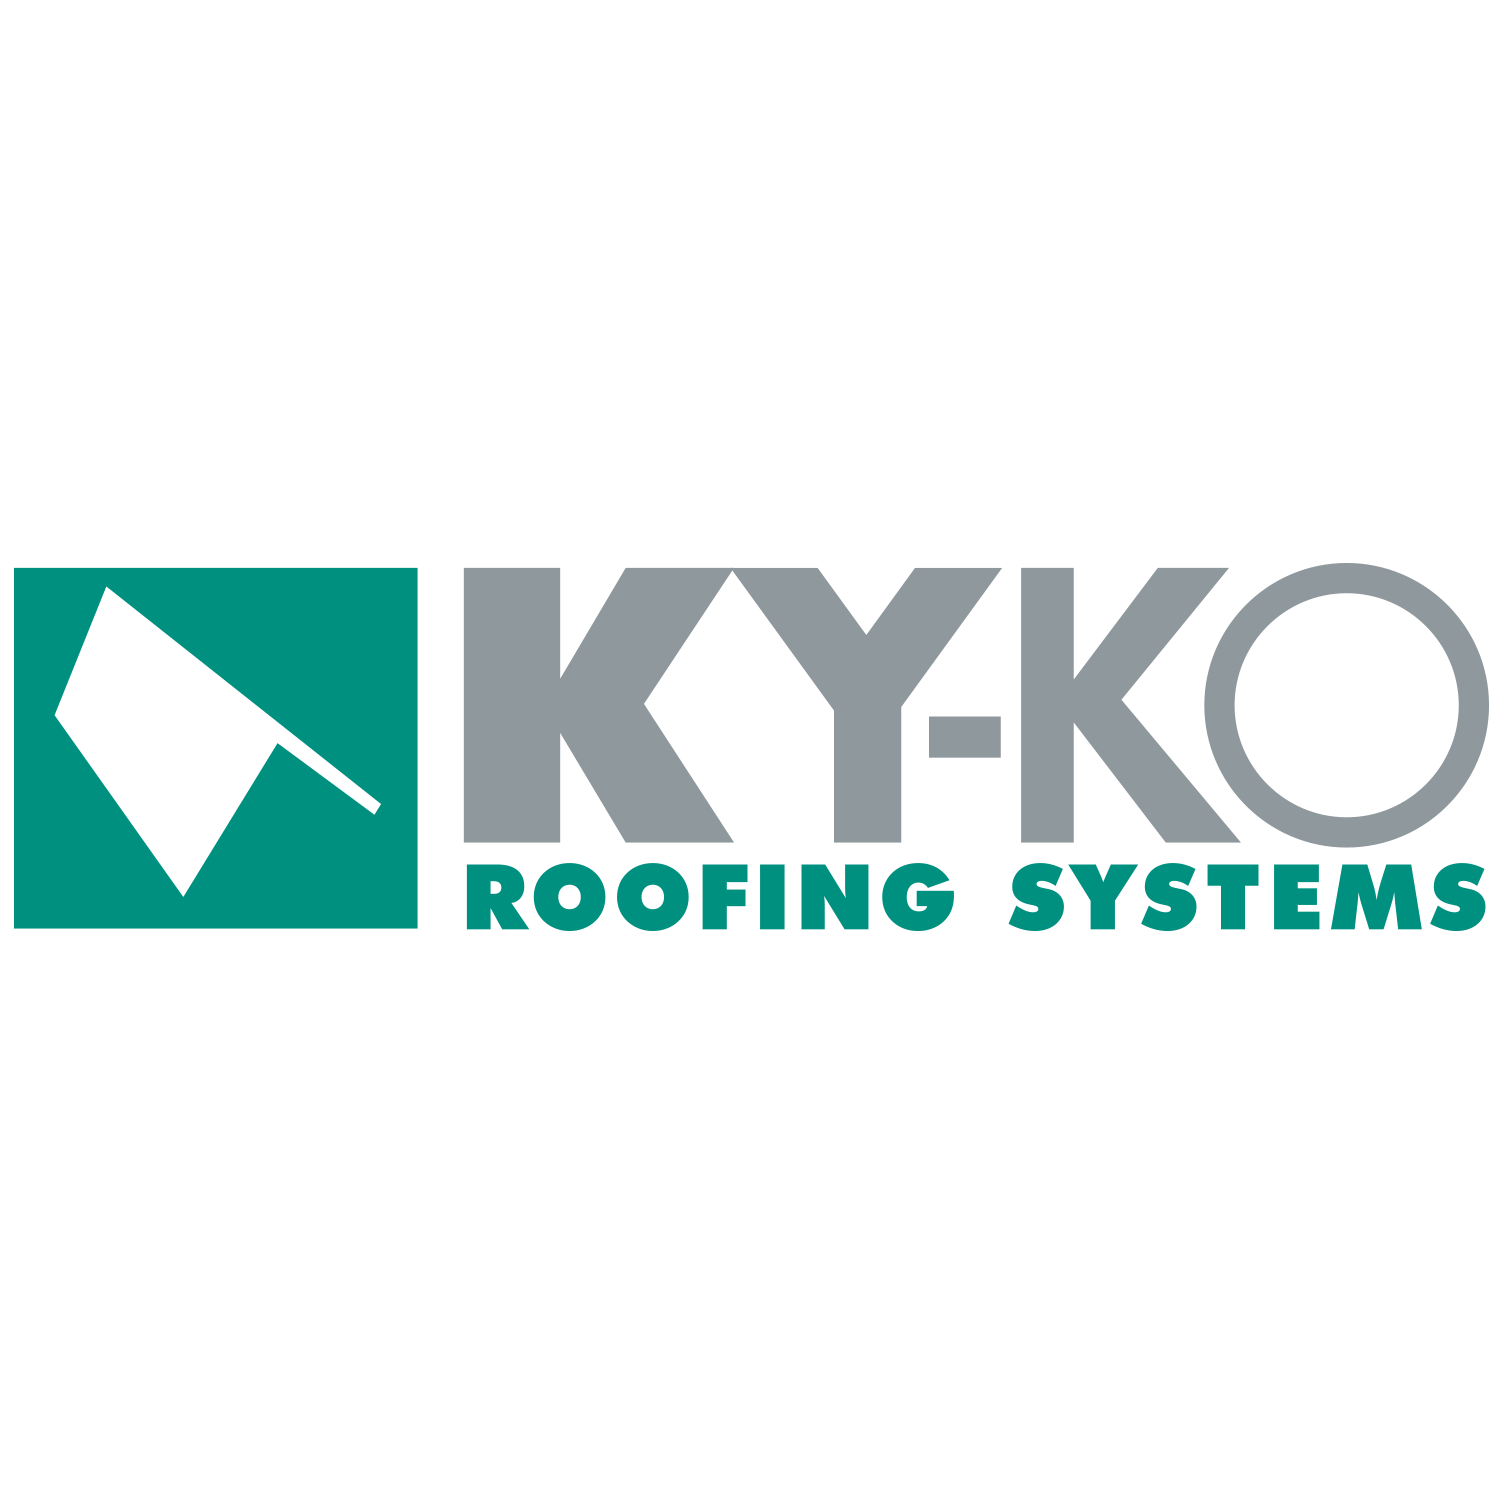 KY-KO Roofing image 3